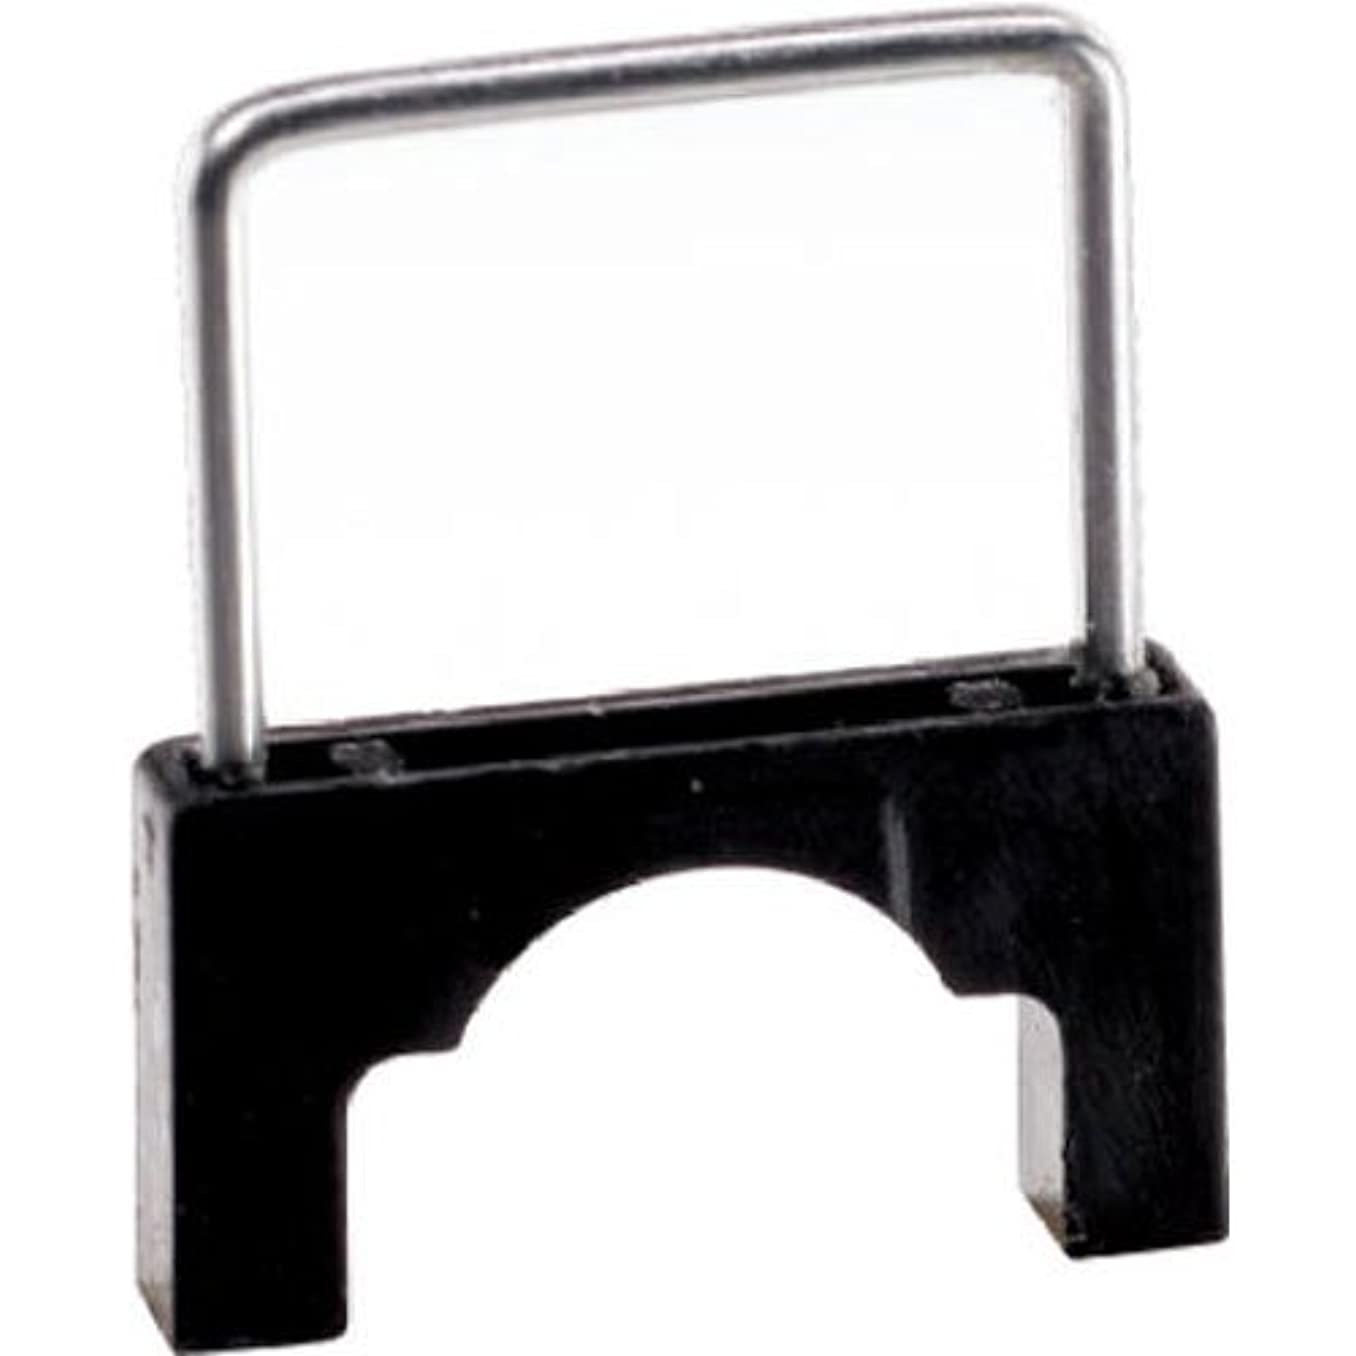 Gardner Bender MPS-2125 CableBoss Staple, ? Inch., Secures Coax: RG-6, (NM) Non-Metalic Cable: 10/2, 12/3, CAT 5e and 16/4 Speaker Wire, 200 Pk., Black